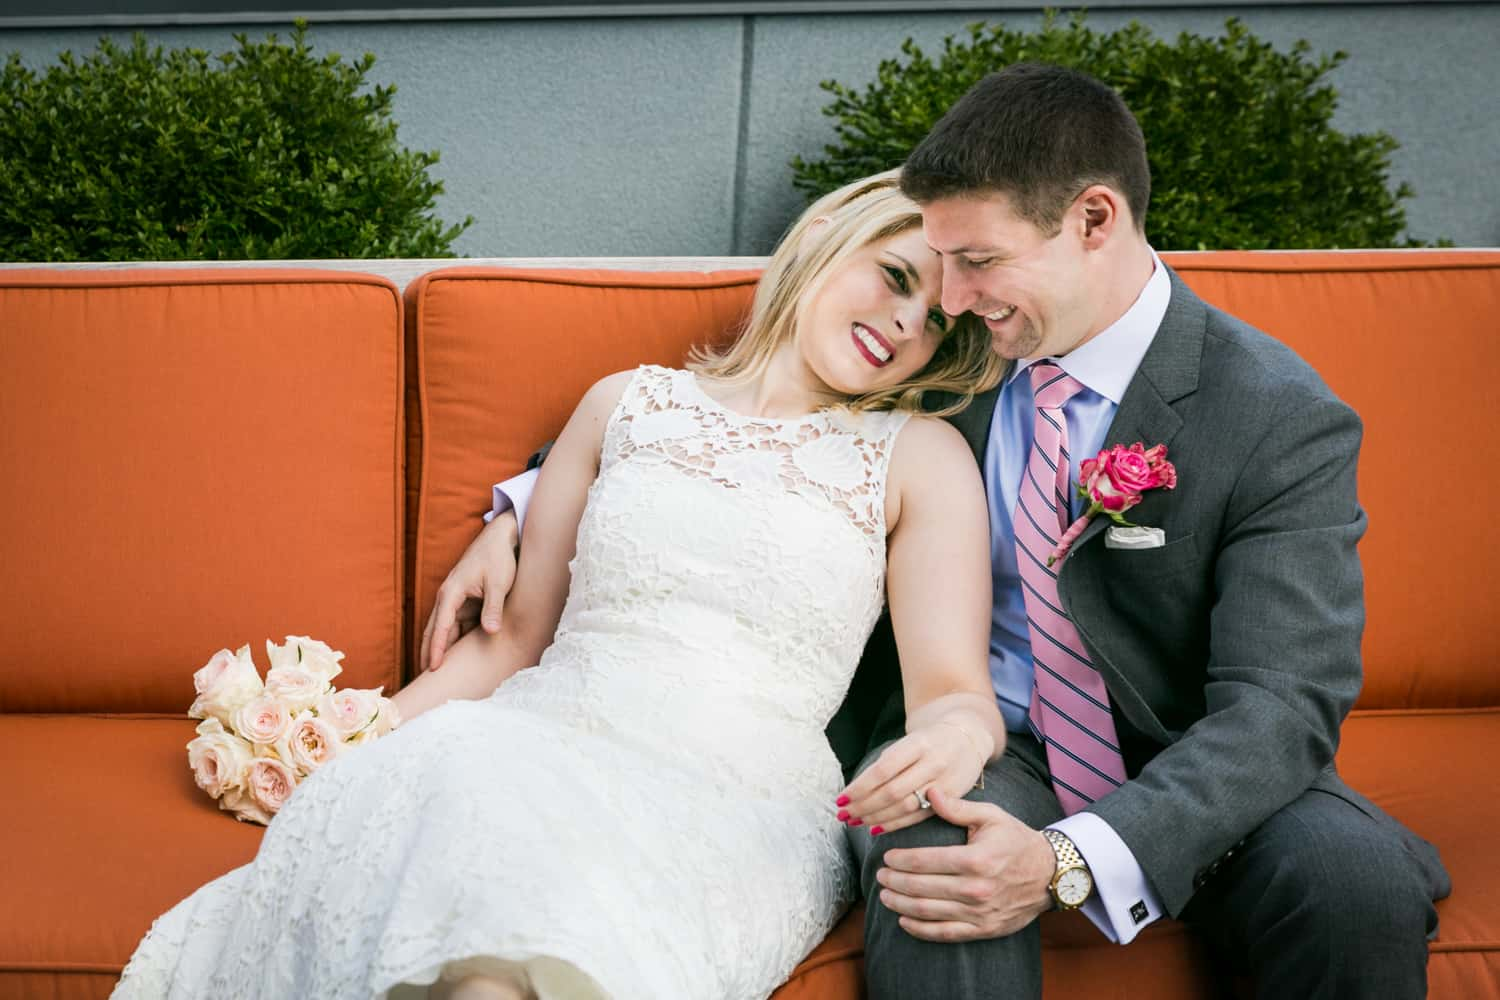 Bride and groom cuddling on couch